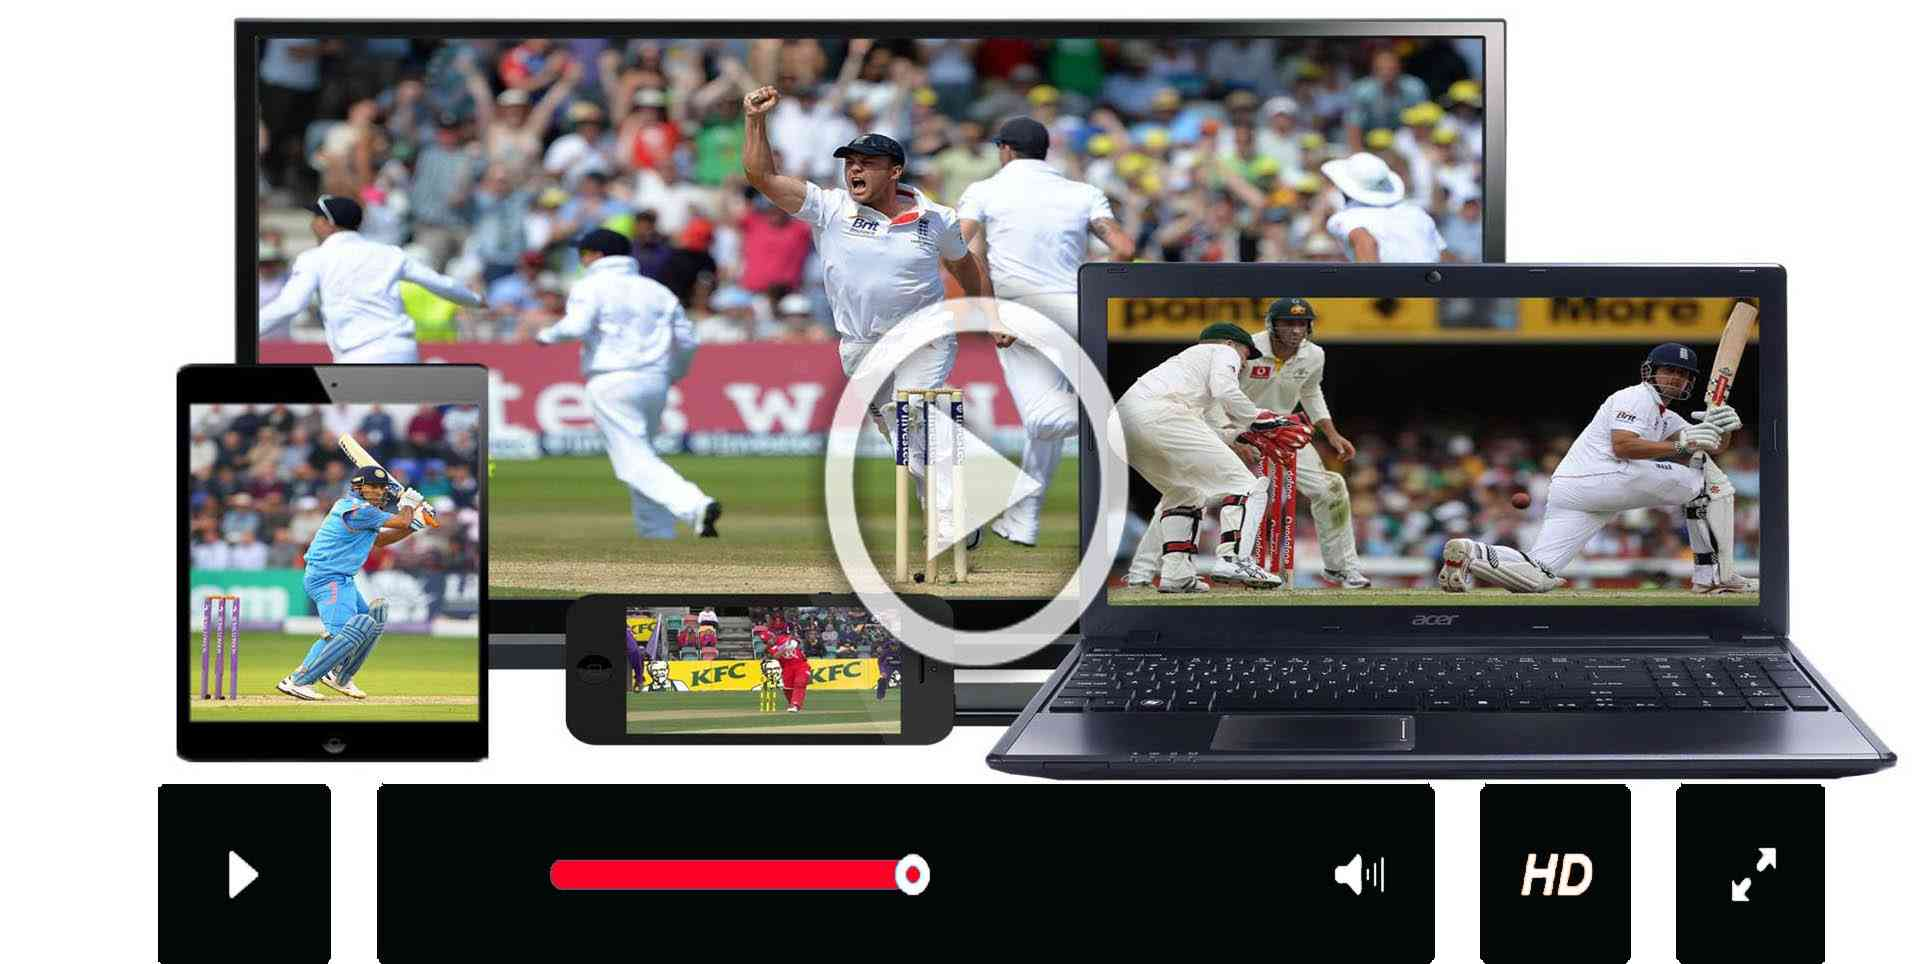 The Ashes Test Series 2013